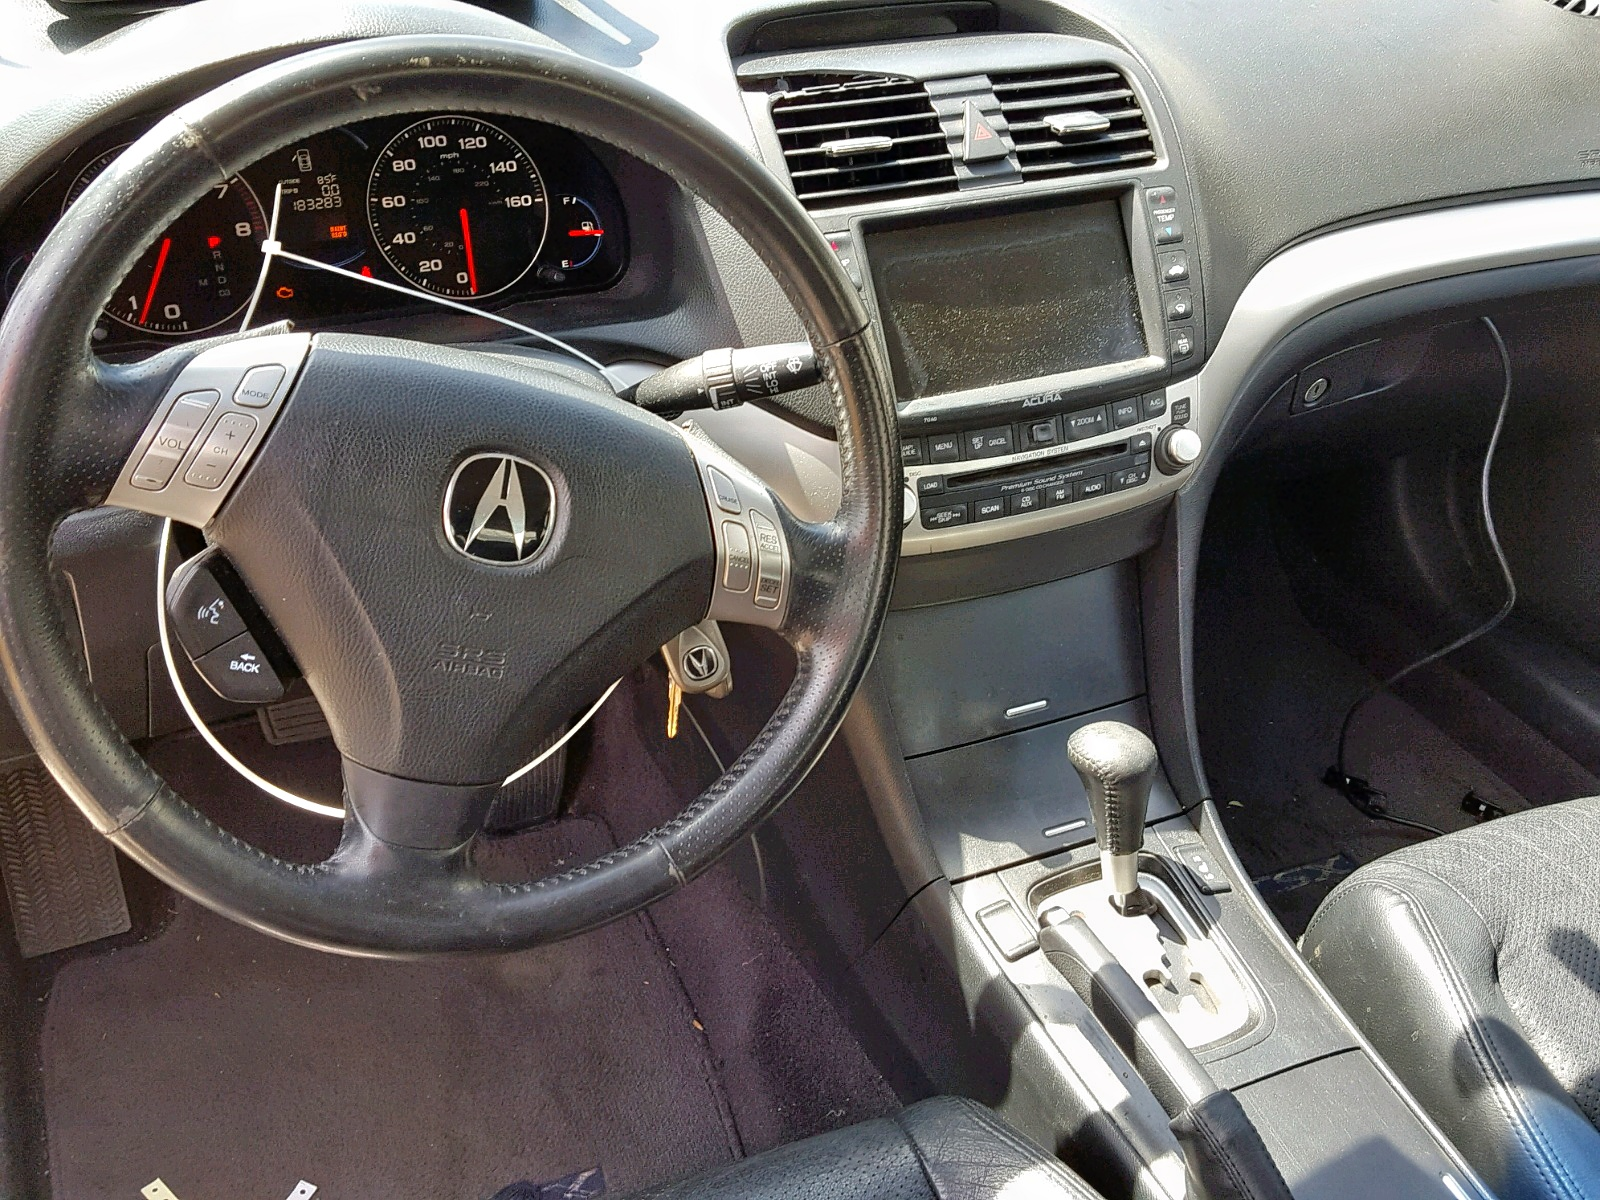 hight resolution of  jh4cl96904c013199 2004 acura tsx 2 4l engine view jh4cl96904c013199